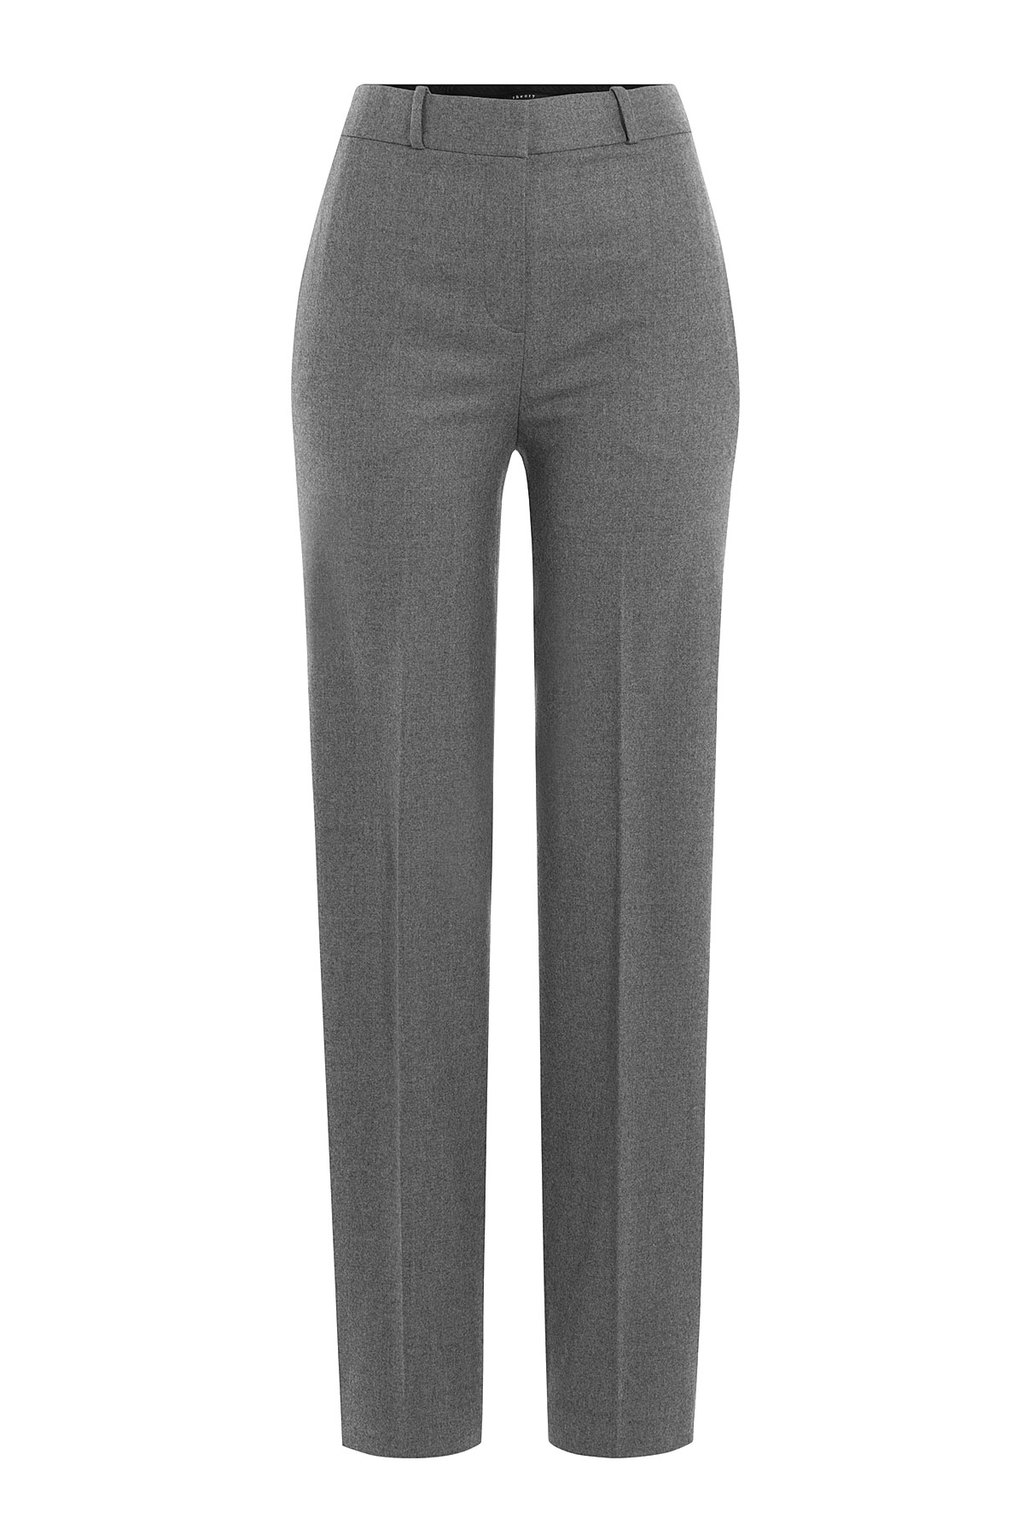 Wool Trousers Grey - length: standard; pattern: plain; pocket detail: pockets at the sides; waist: mid/regular rise; predominant colour: mid grey; occasions: work, creative work; fibres: wool - mix; fit: straight leg; pattern type: fabric; texture group: woven light midweight; style: standard; season: a/w 2015